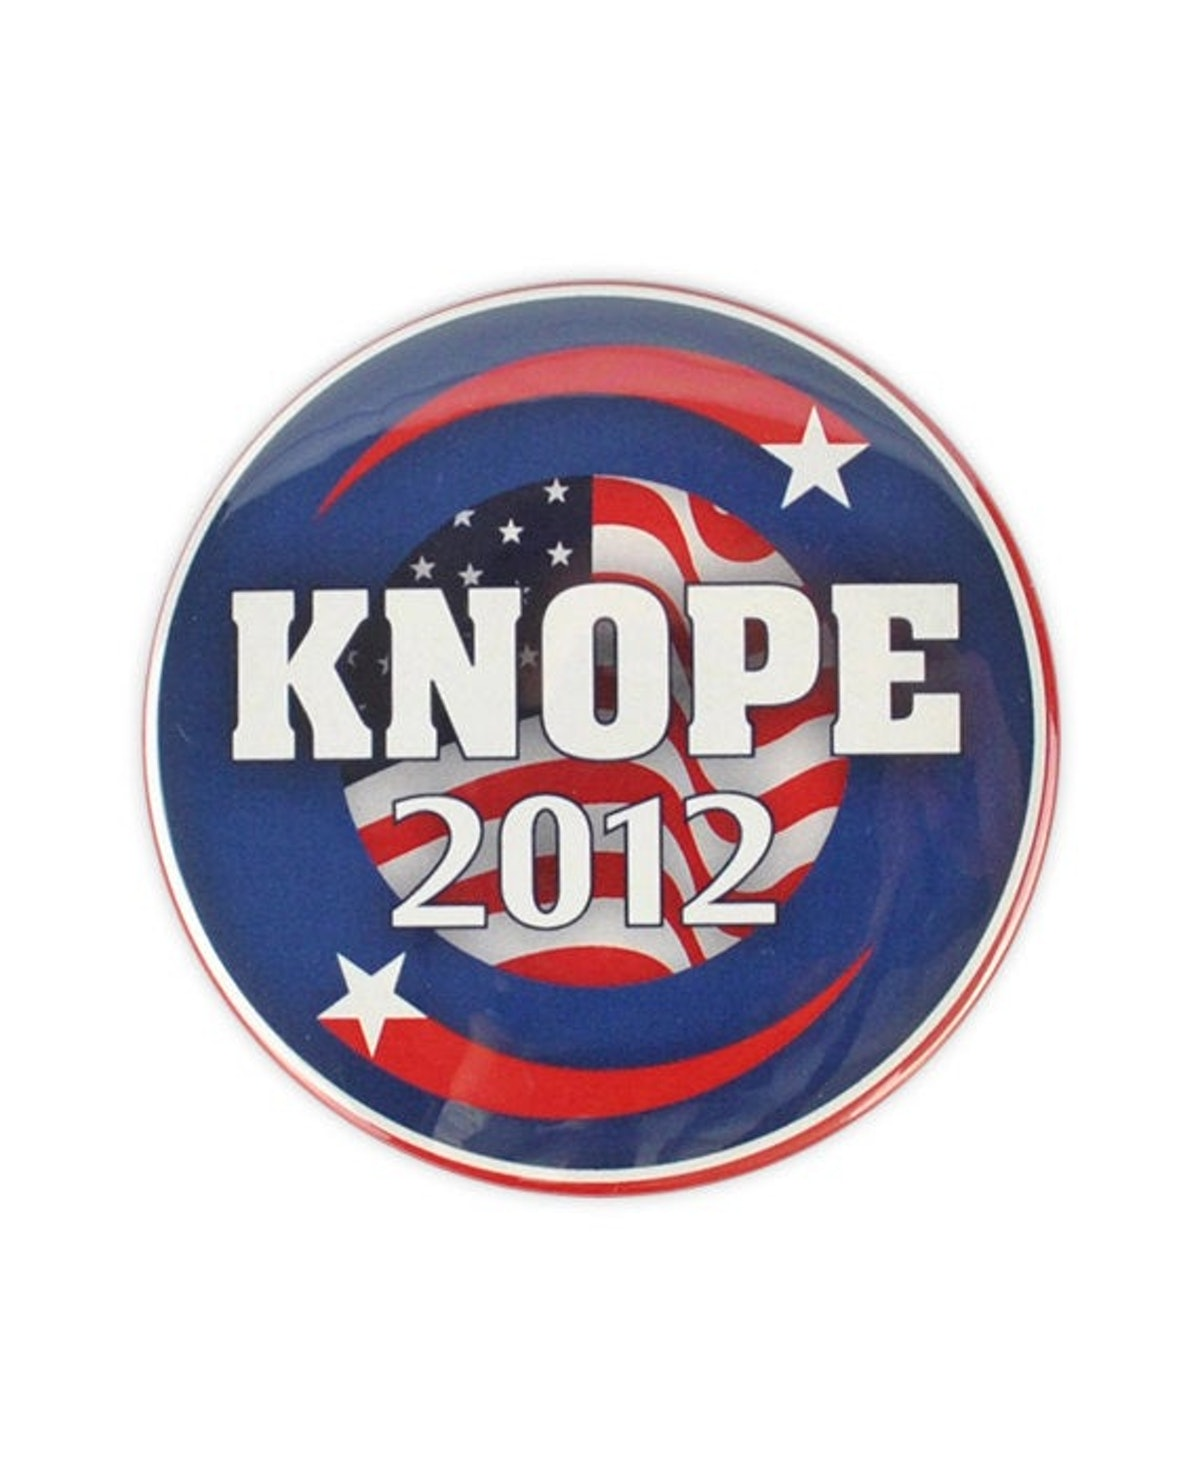 """YouCantgoBack Leslie Knope Large """"Knope 2012"""" Button! parks and recreation, Amy Poehler. pawnee council election"""